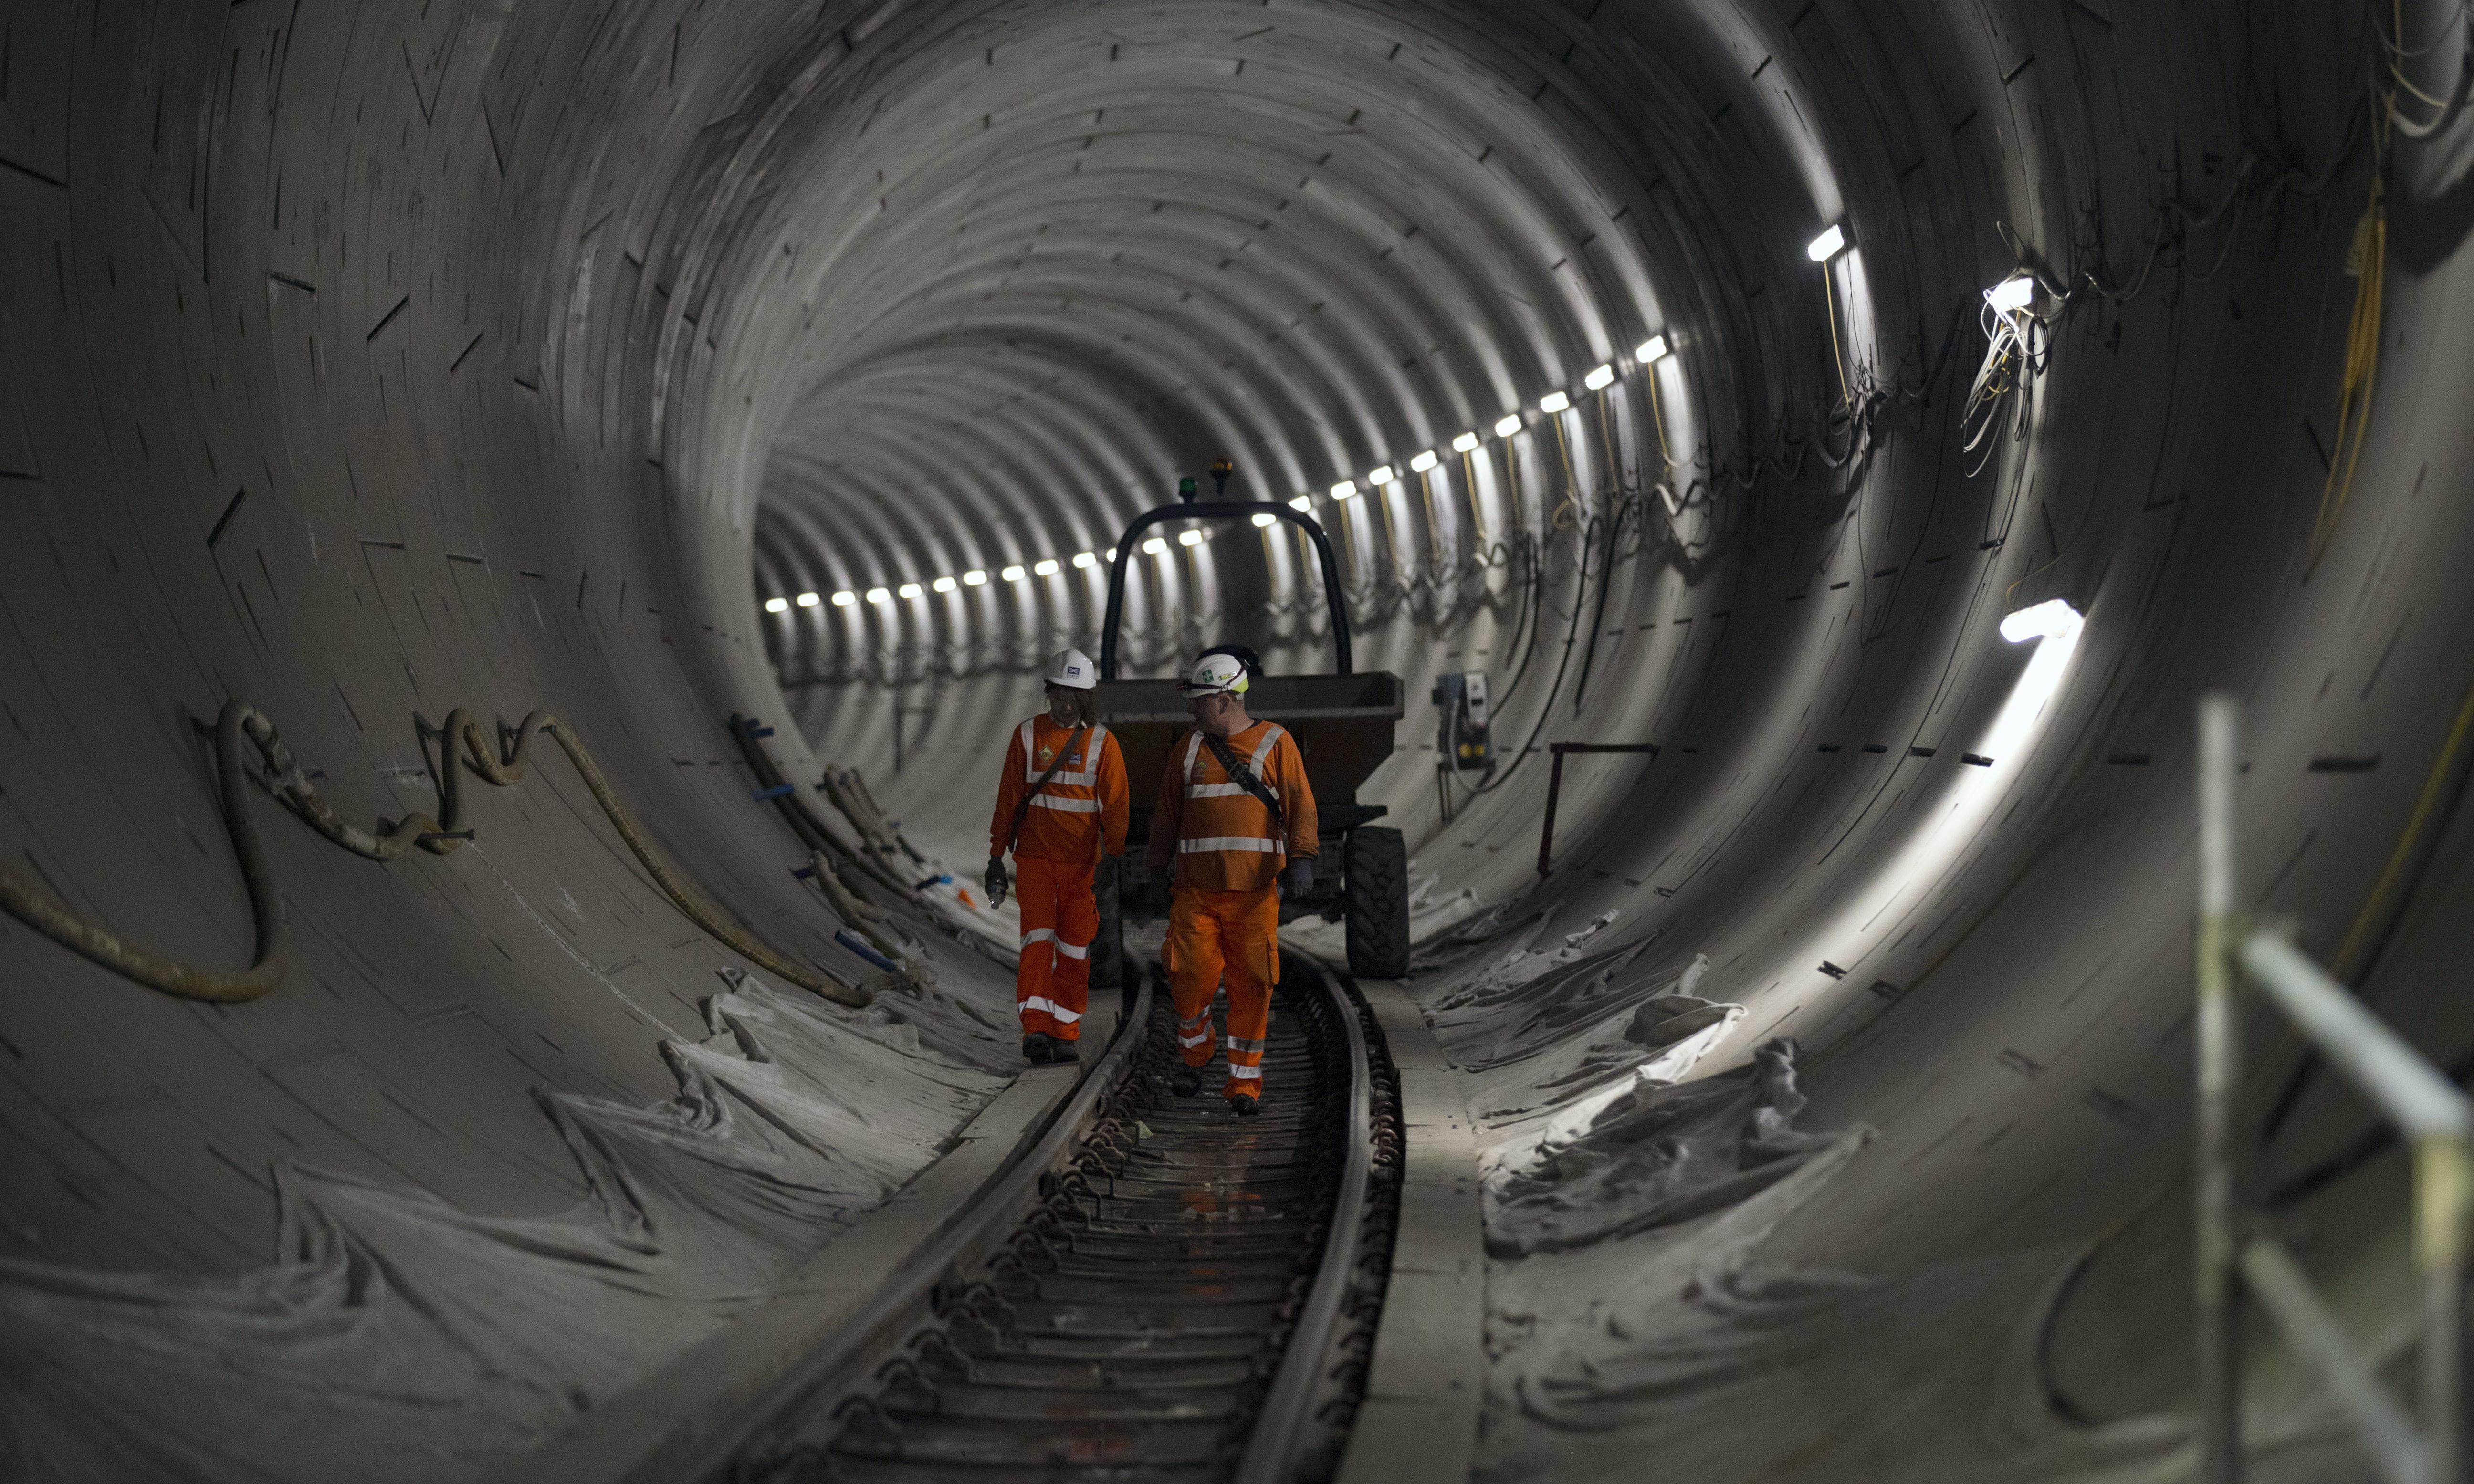 Crossrail delays will cost TfL up to £1.35bn in lost revenue